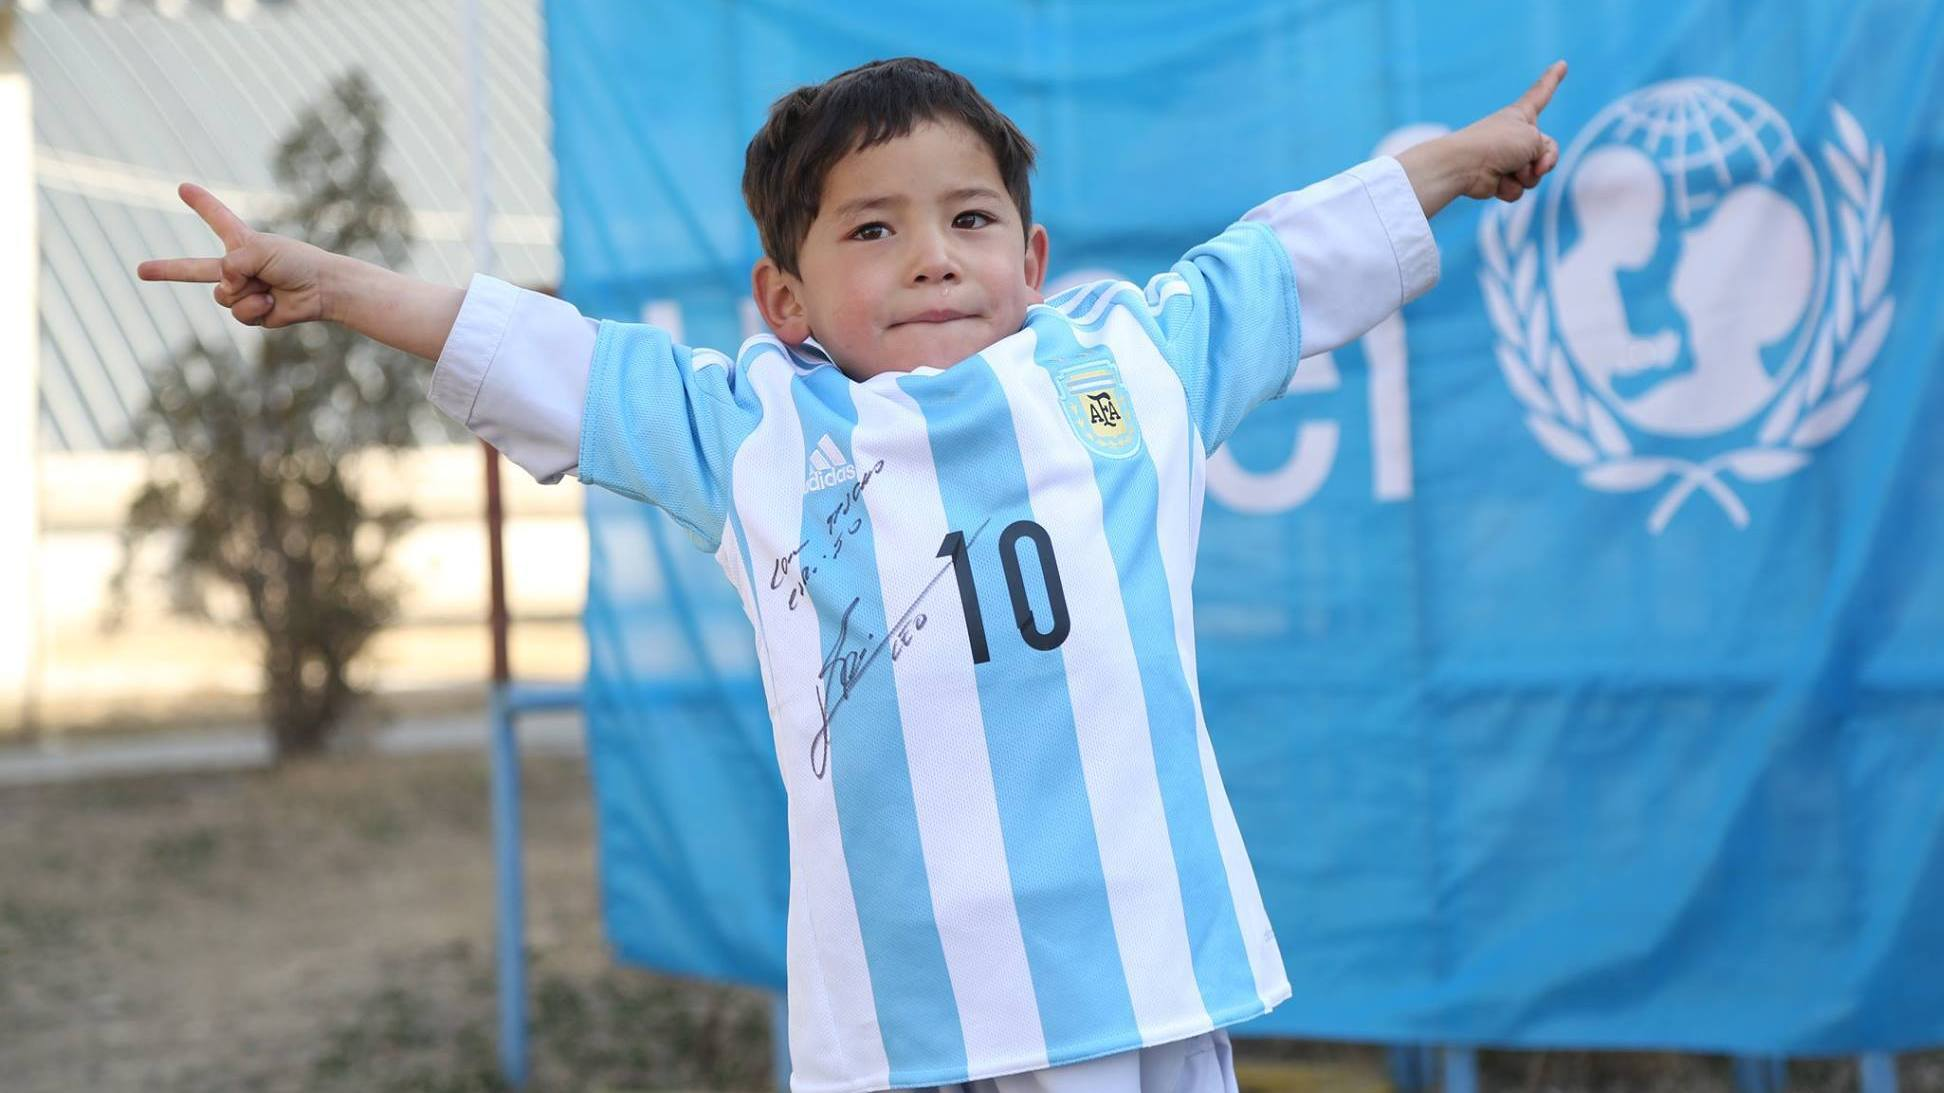 Score! Afghan Boy With Homemade Lionel Messi Jersey Just Got A Real One